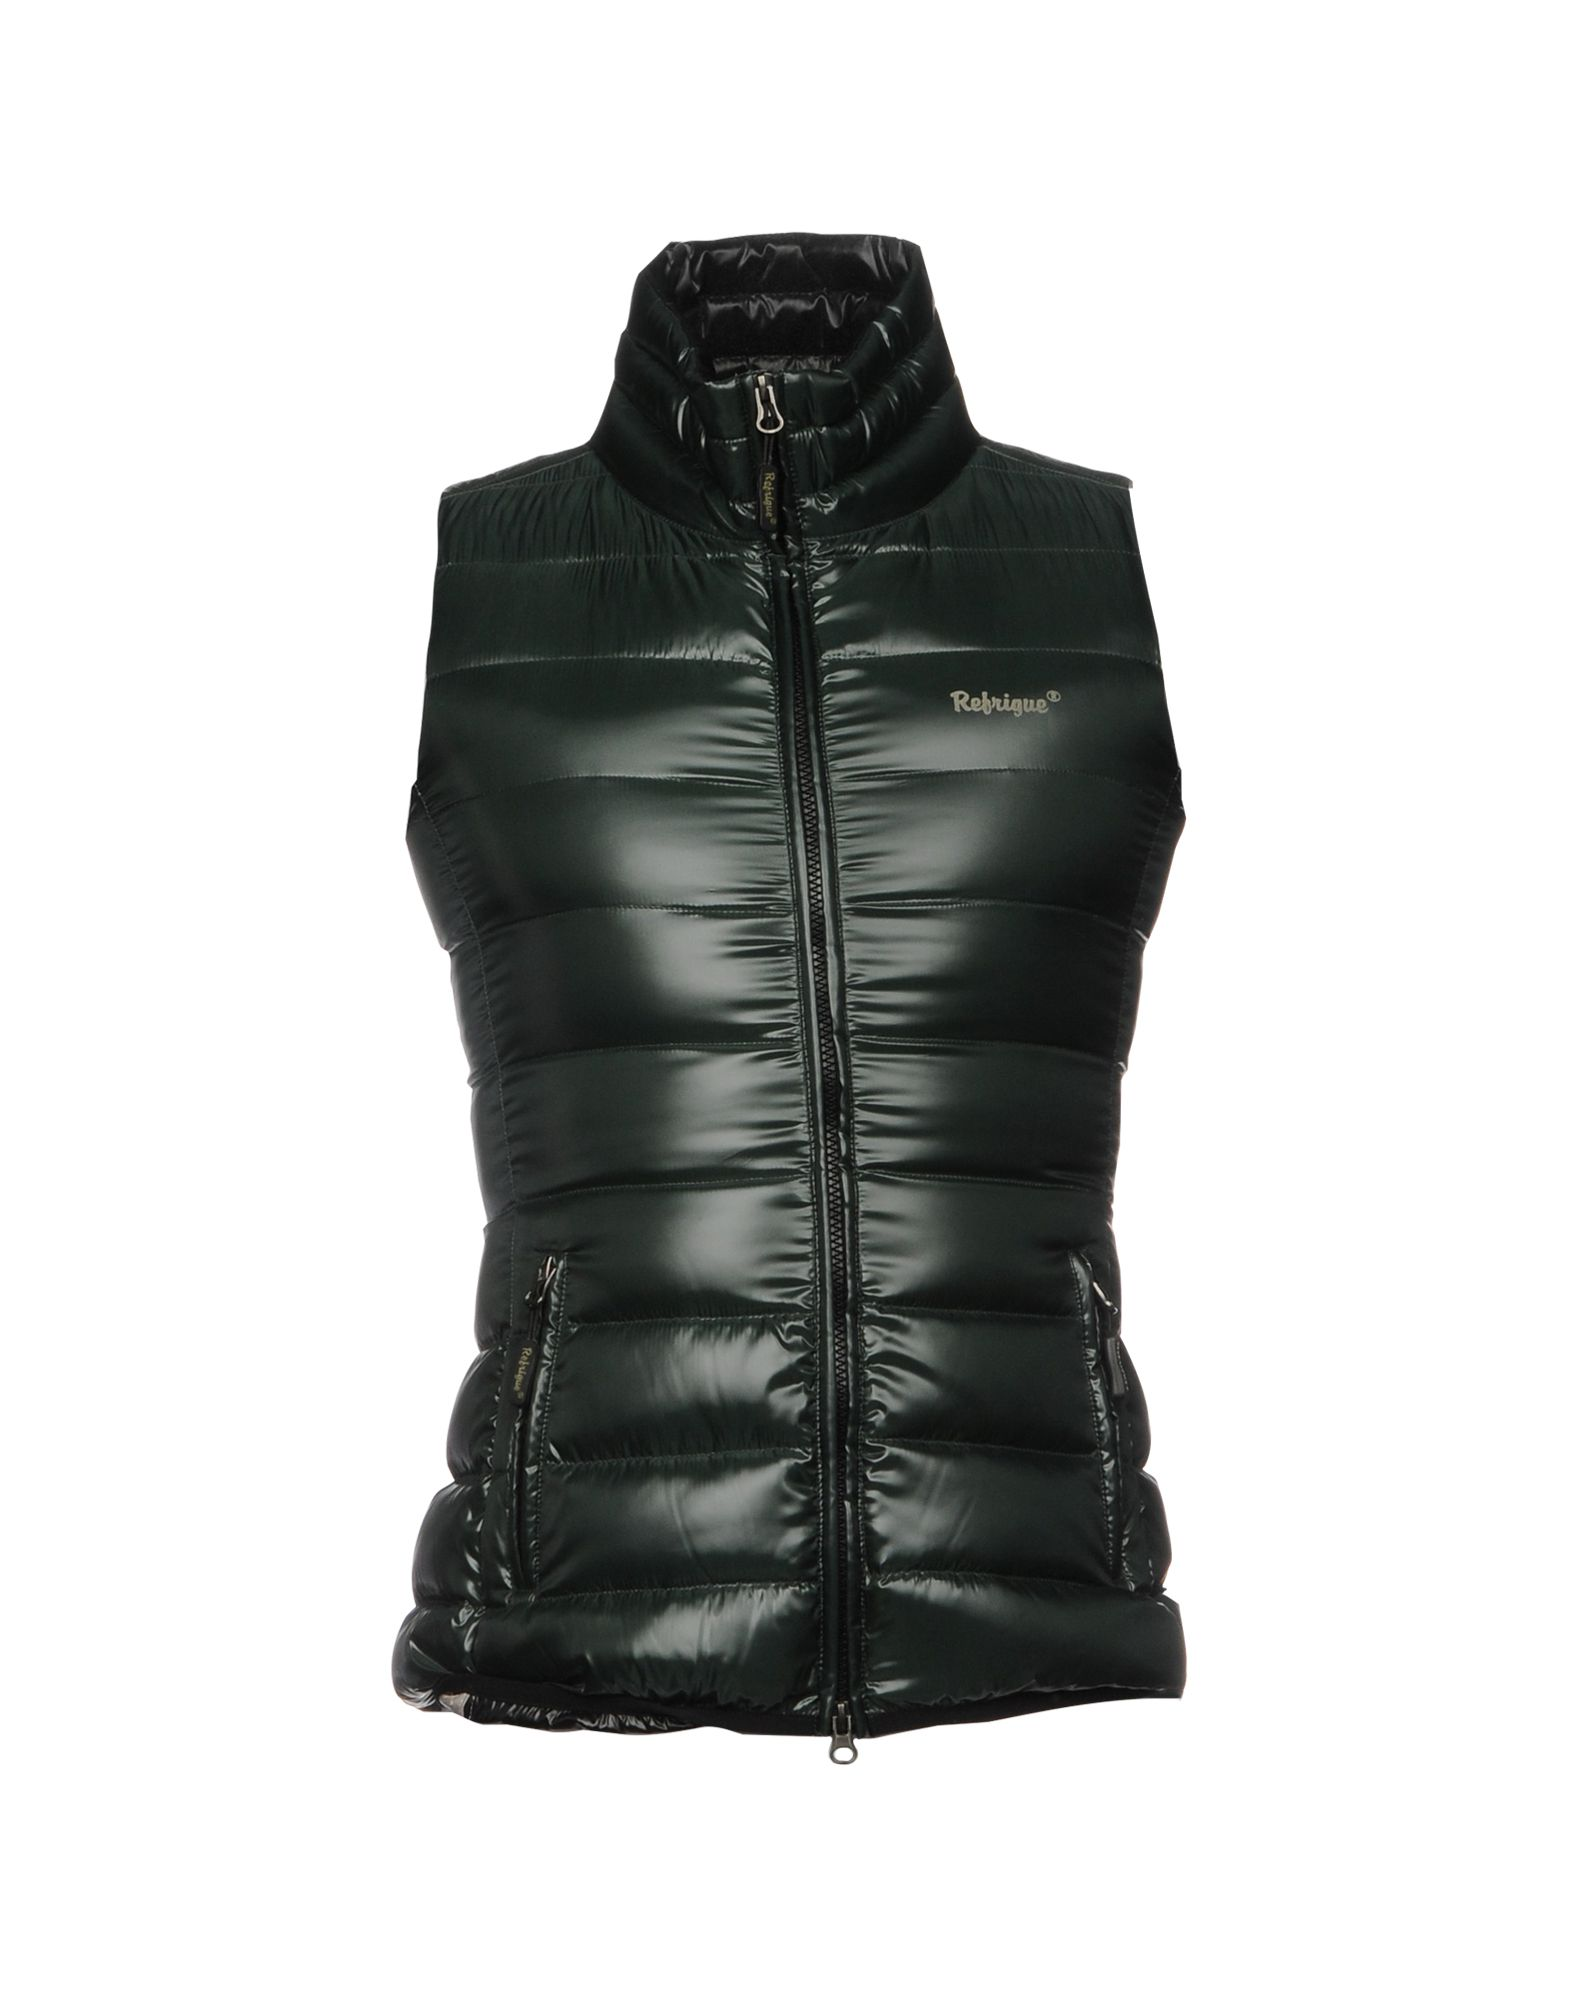 Gilet Refrigue Uomo - Acquista online su